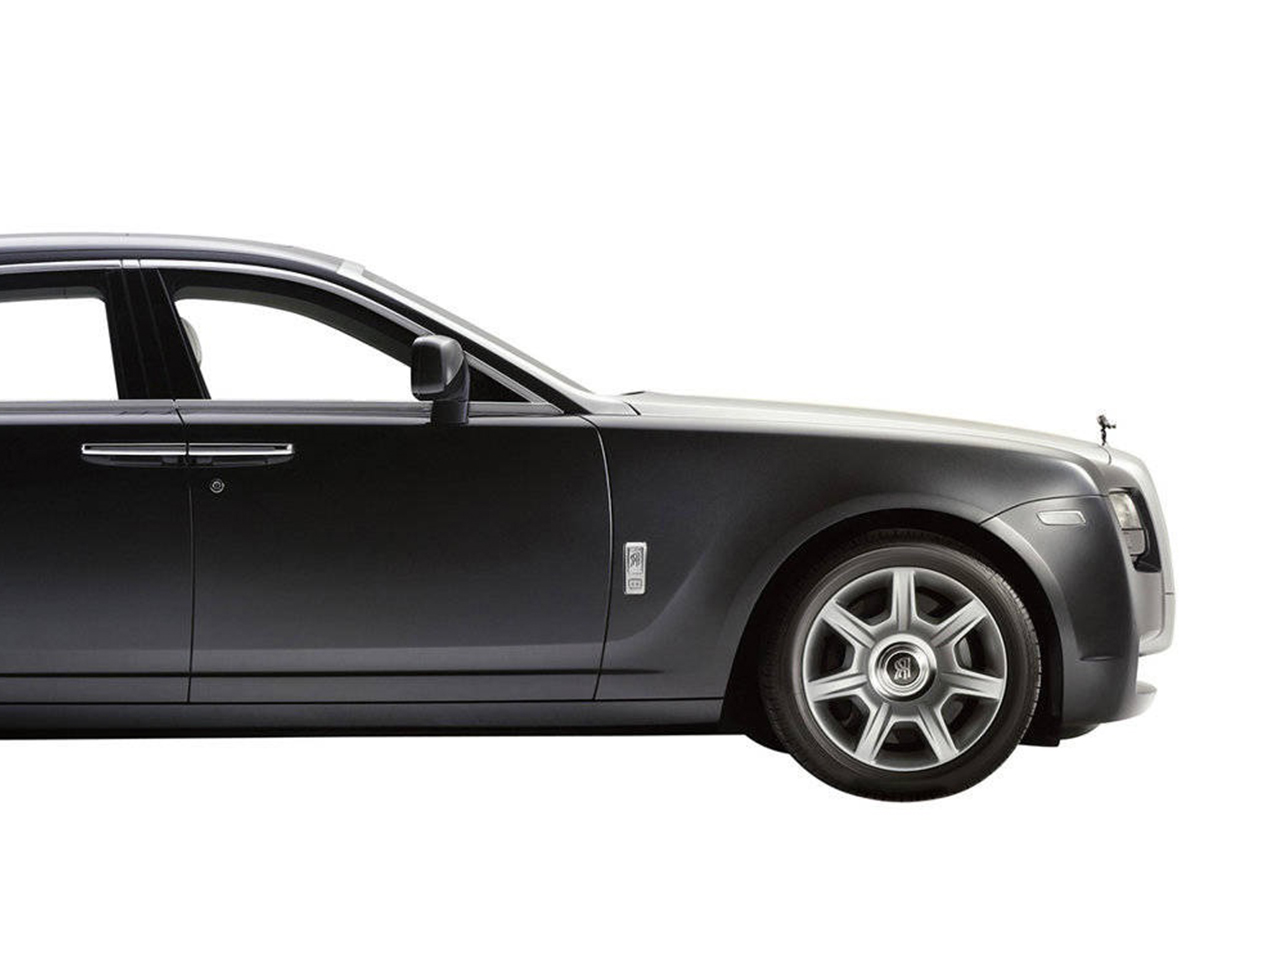 Rolls Royce Ghost car for hire